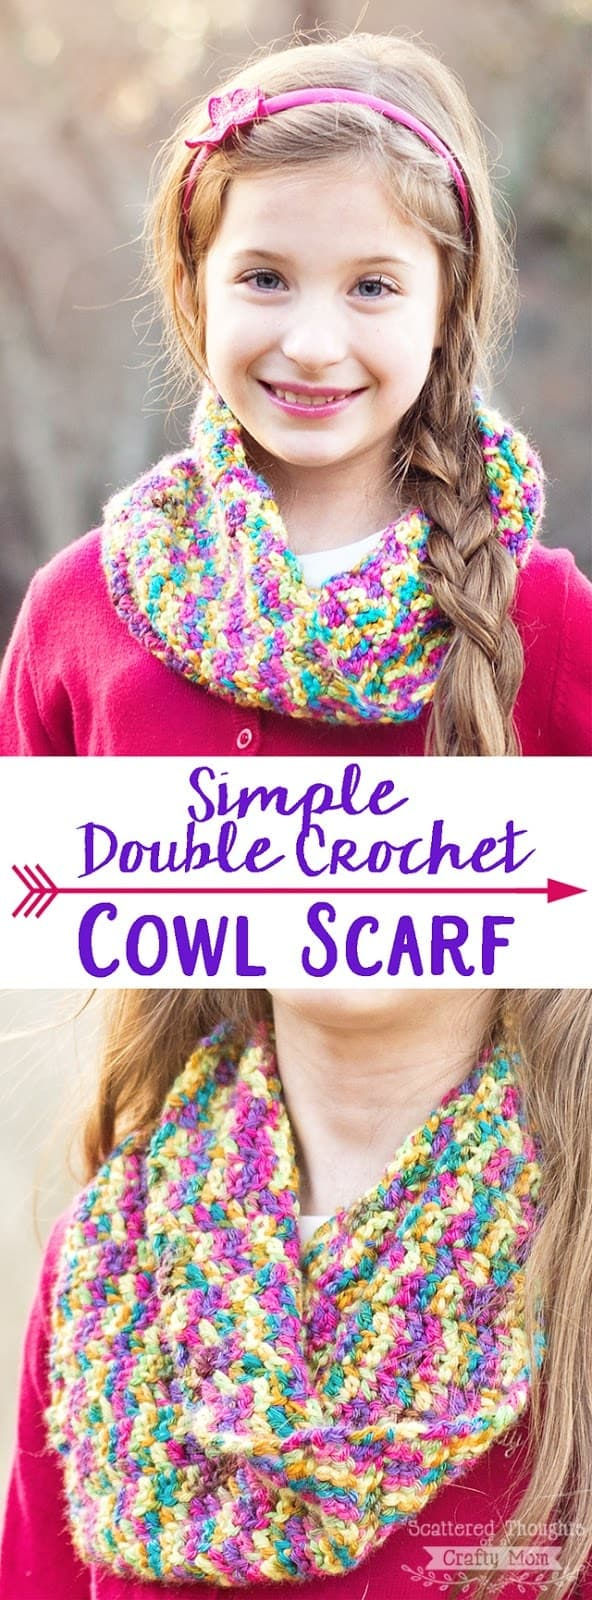 Make this adorable Double Crochet Cowl Scarf! (video tutorial included)